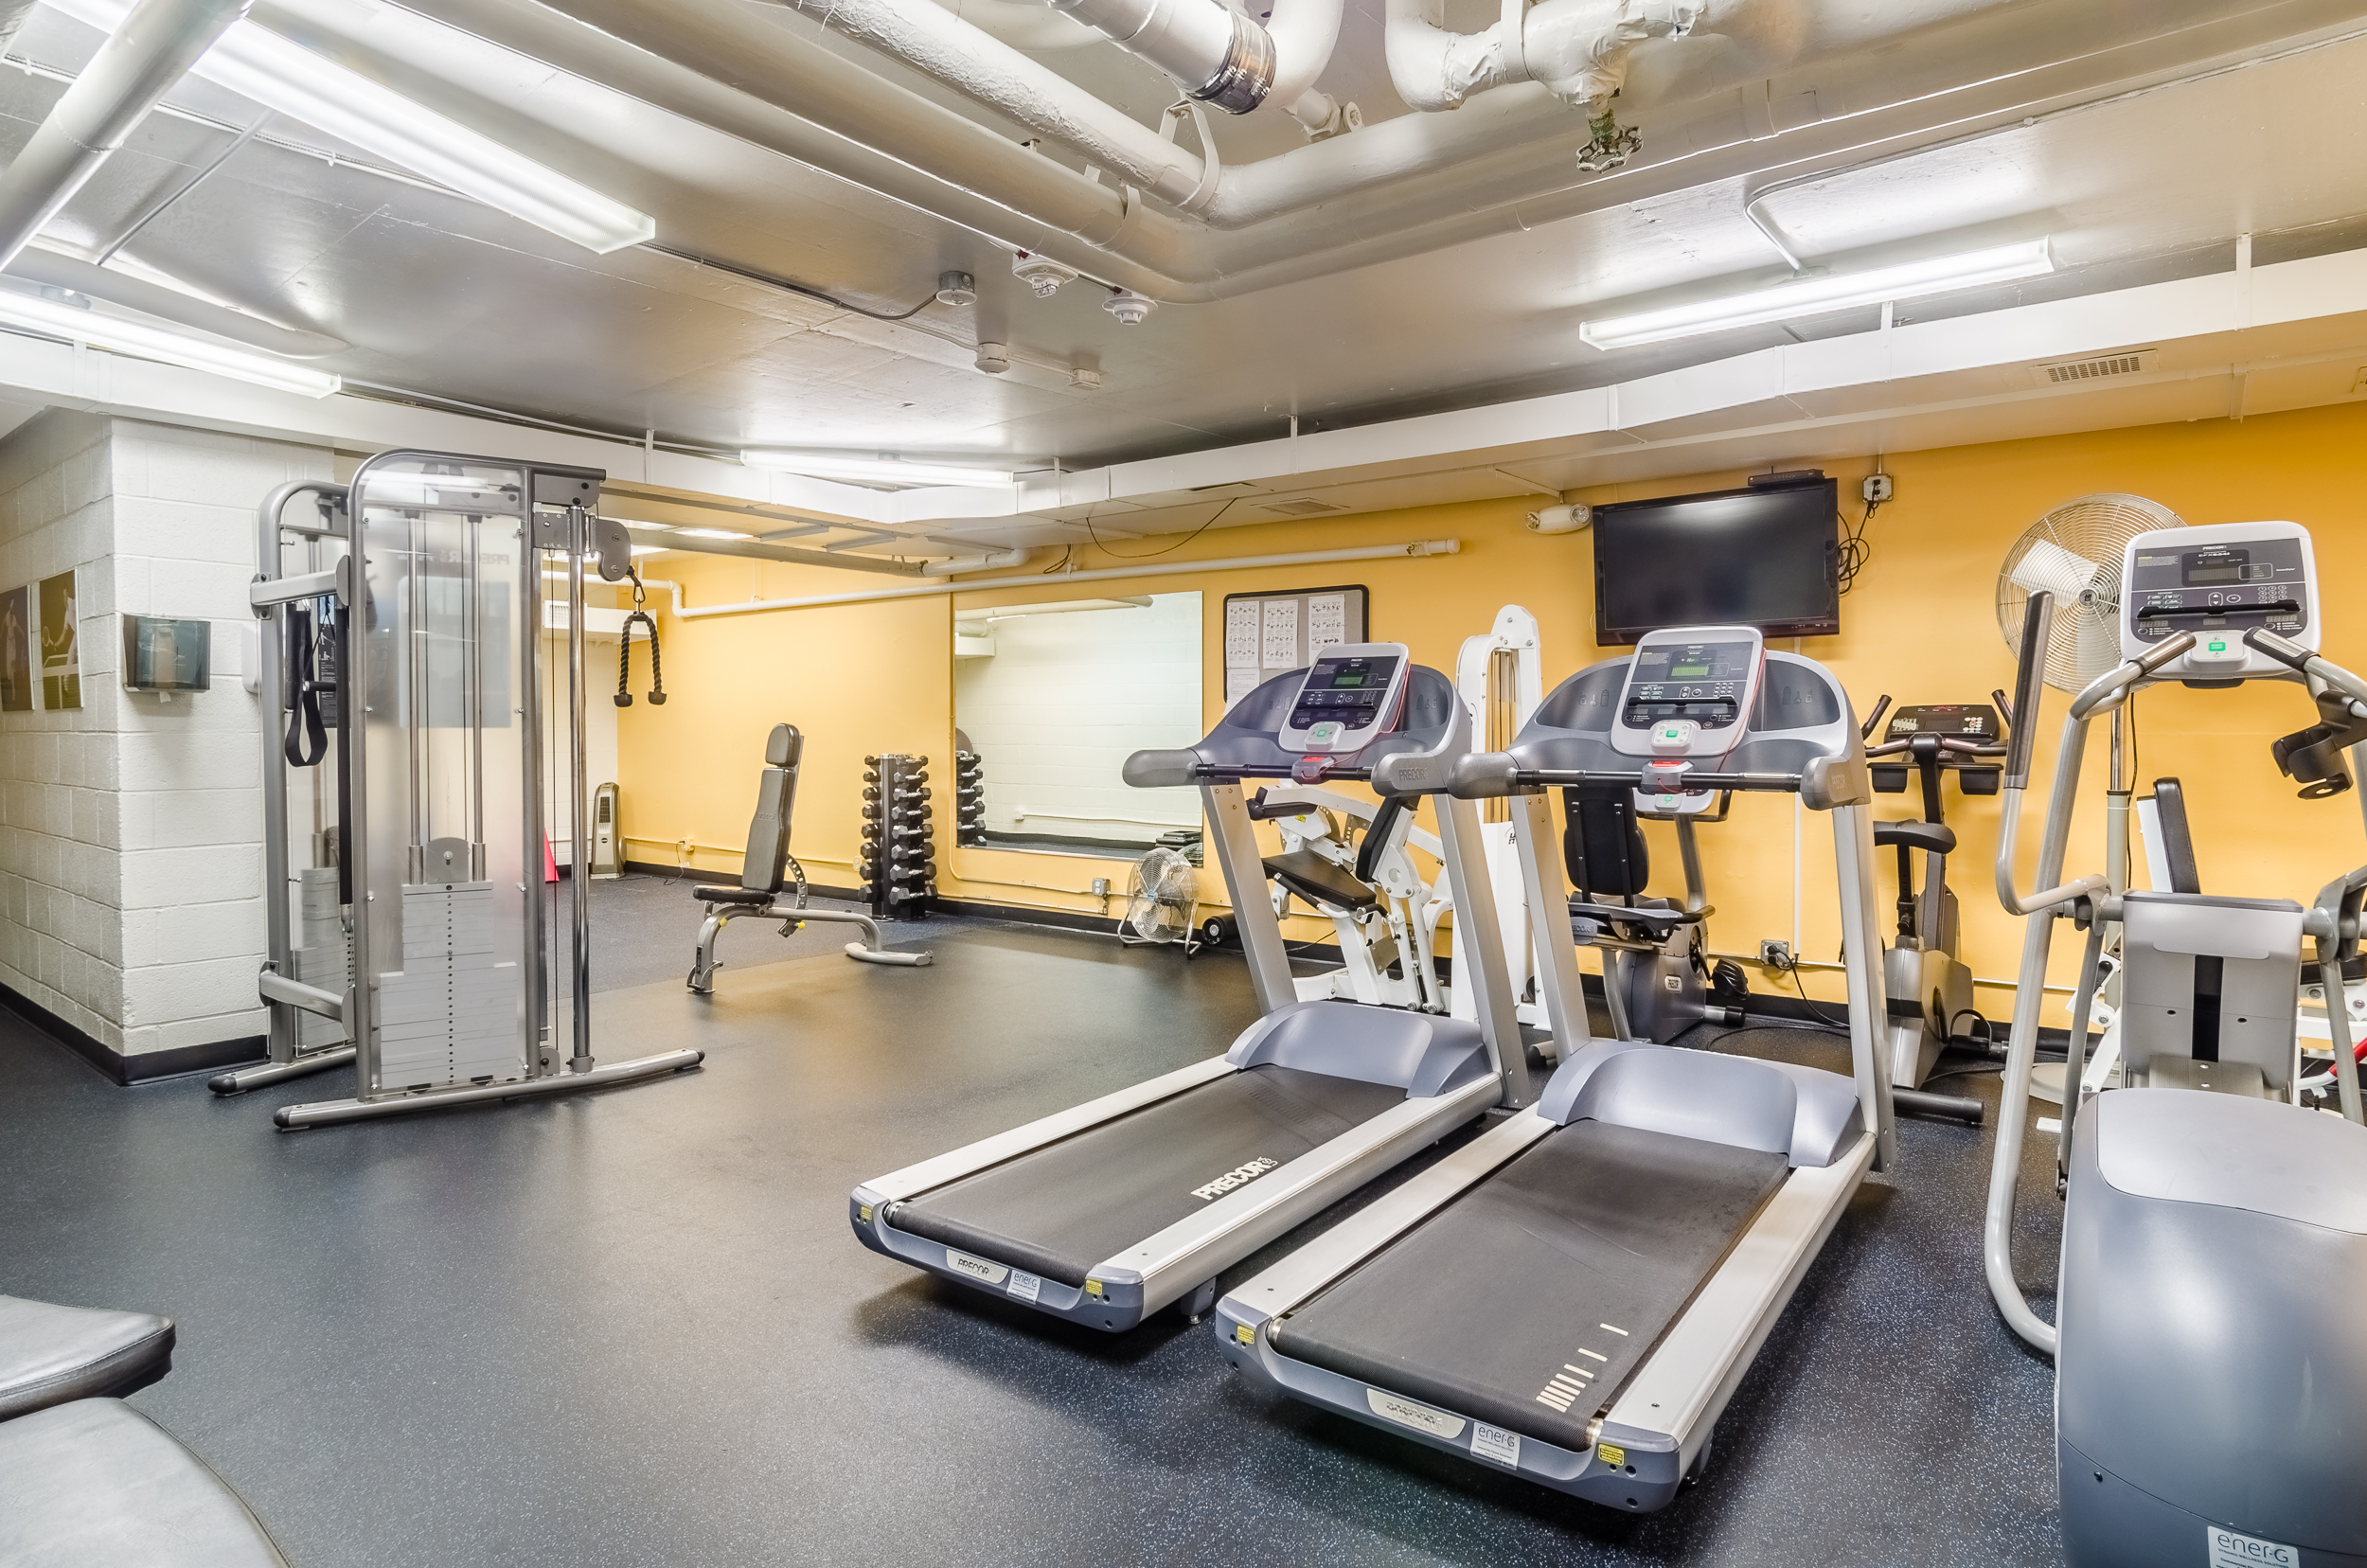 32_Watergate West Fitness Room 01 (web).jpg